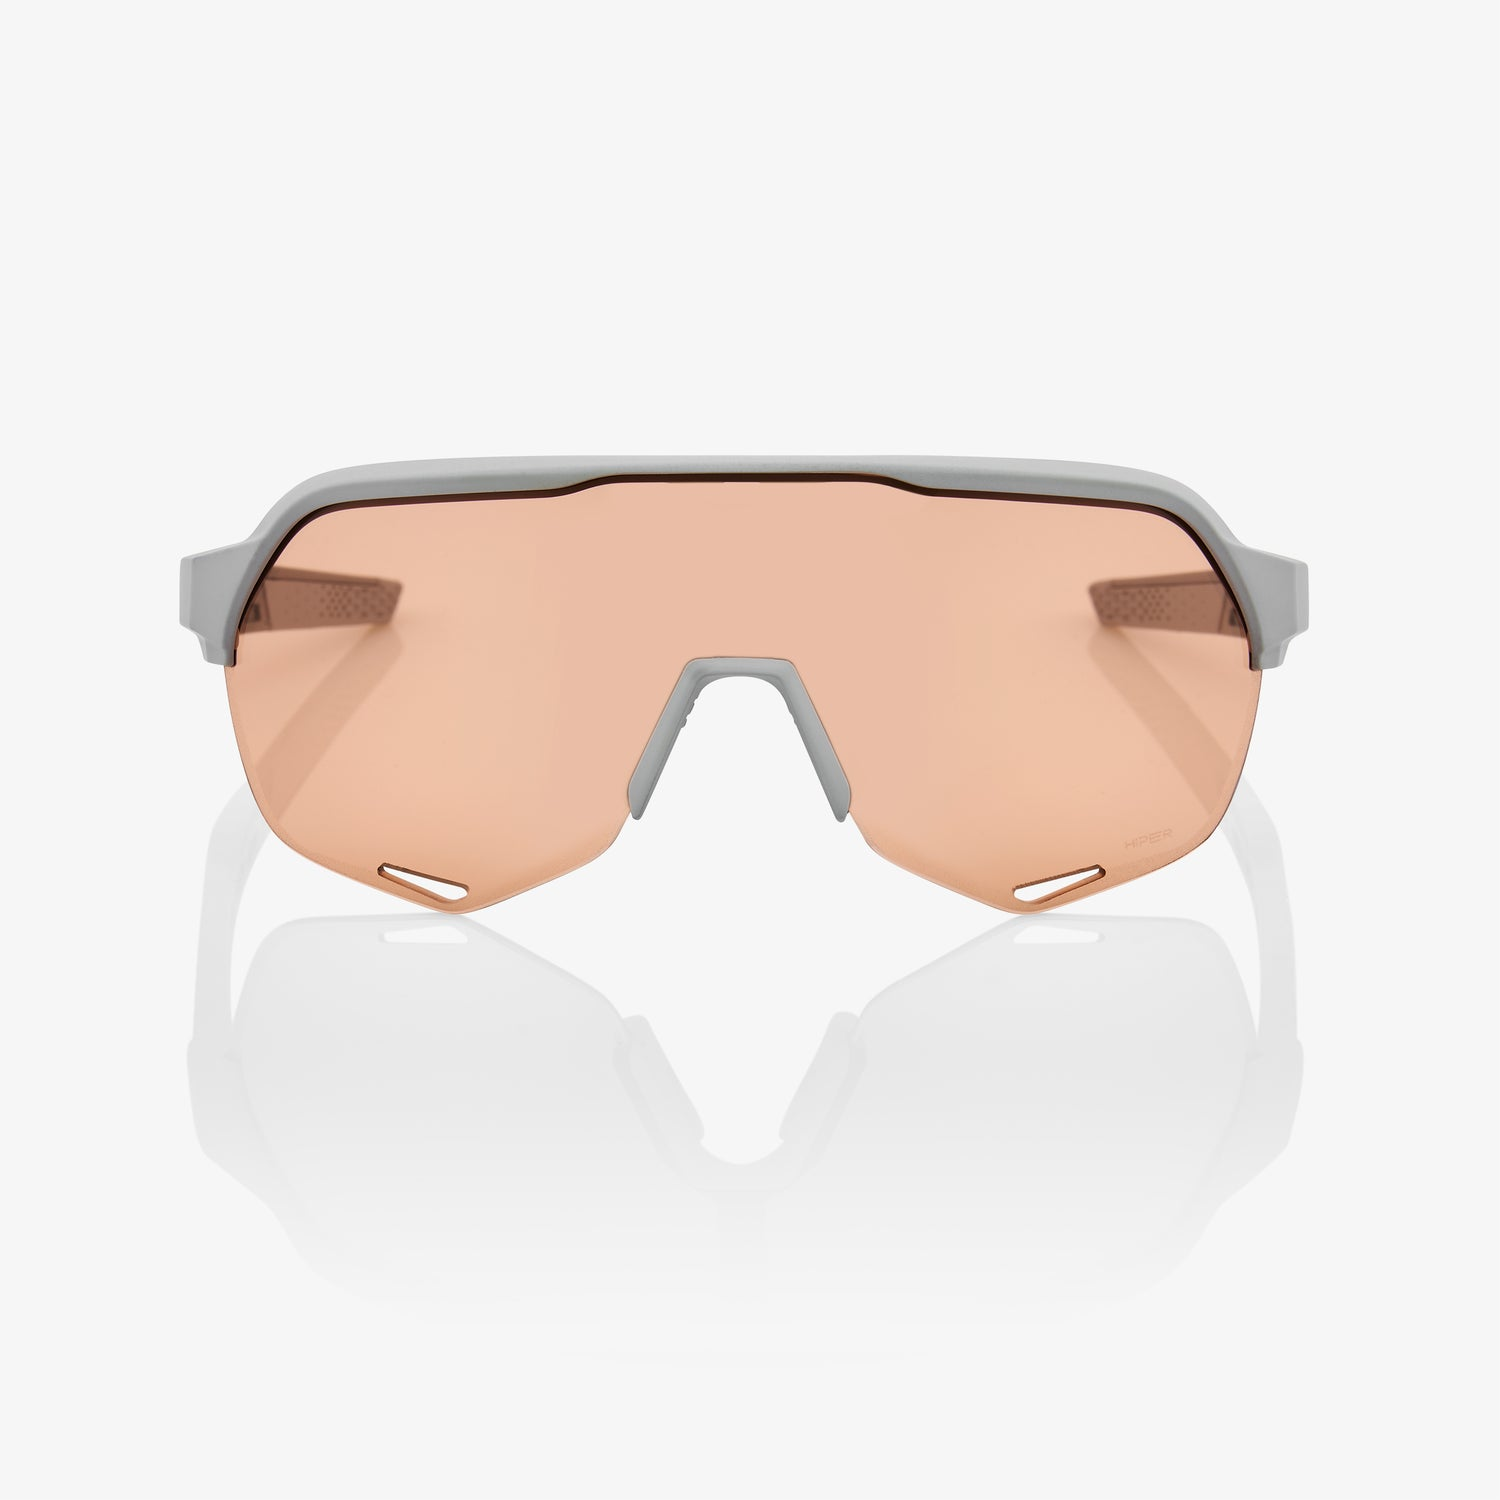 S2 - Soft Tact Stone Grey - HiPER Coral Lens